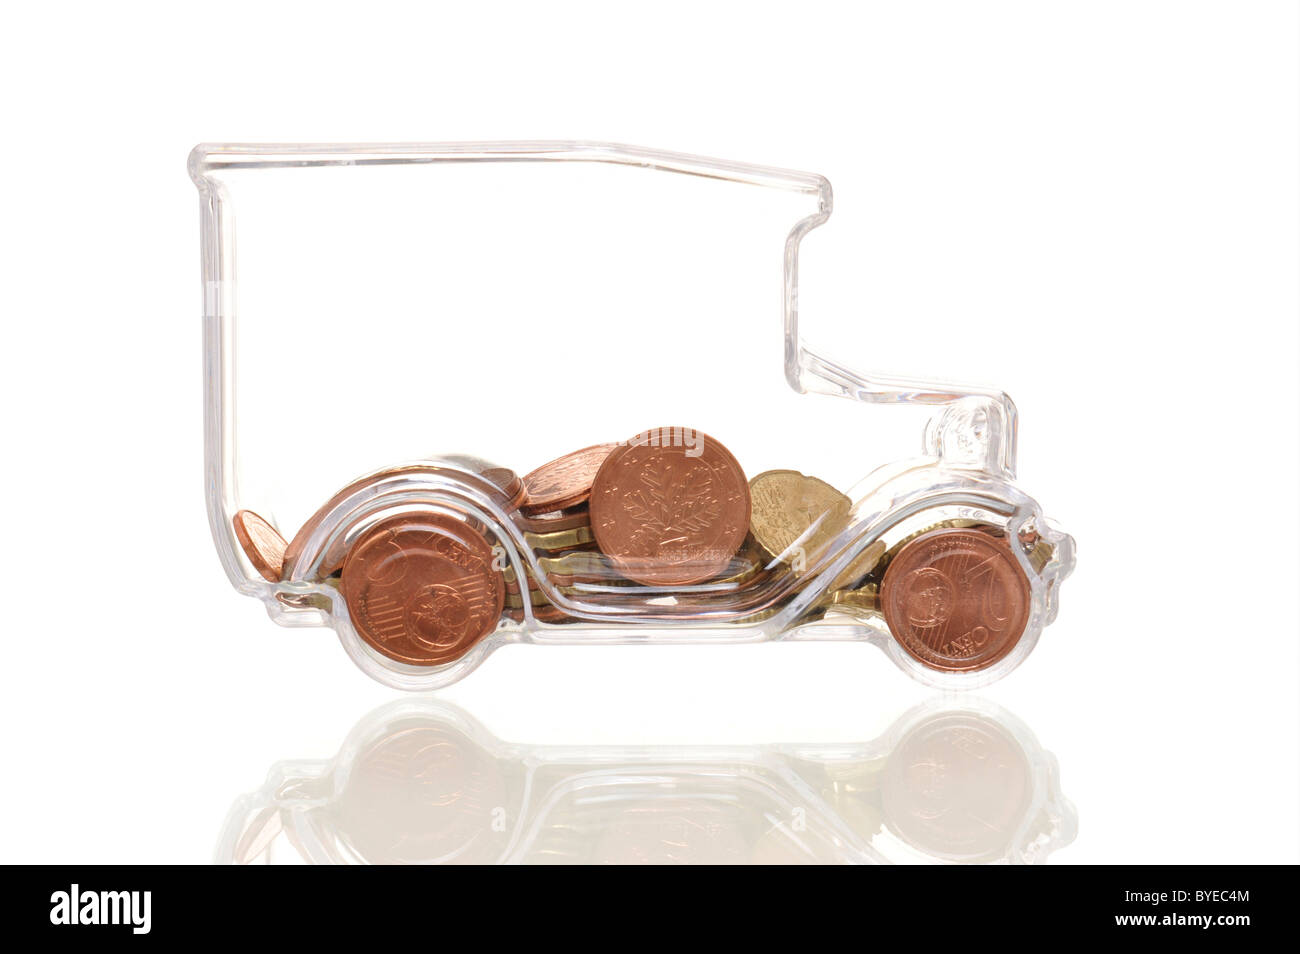 Transparent truck with Euro coins, symbolic image for transparent transport costs - Stock Image